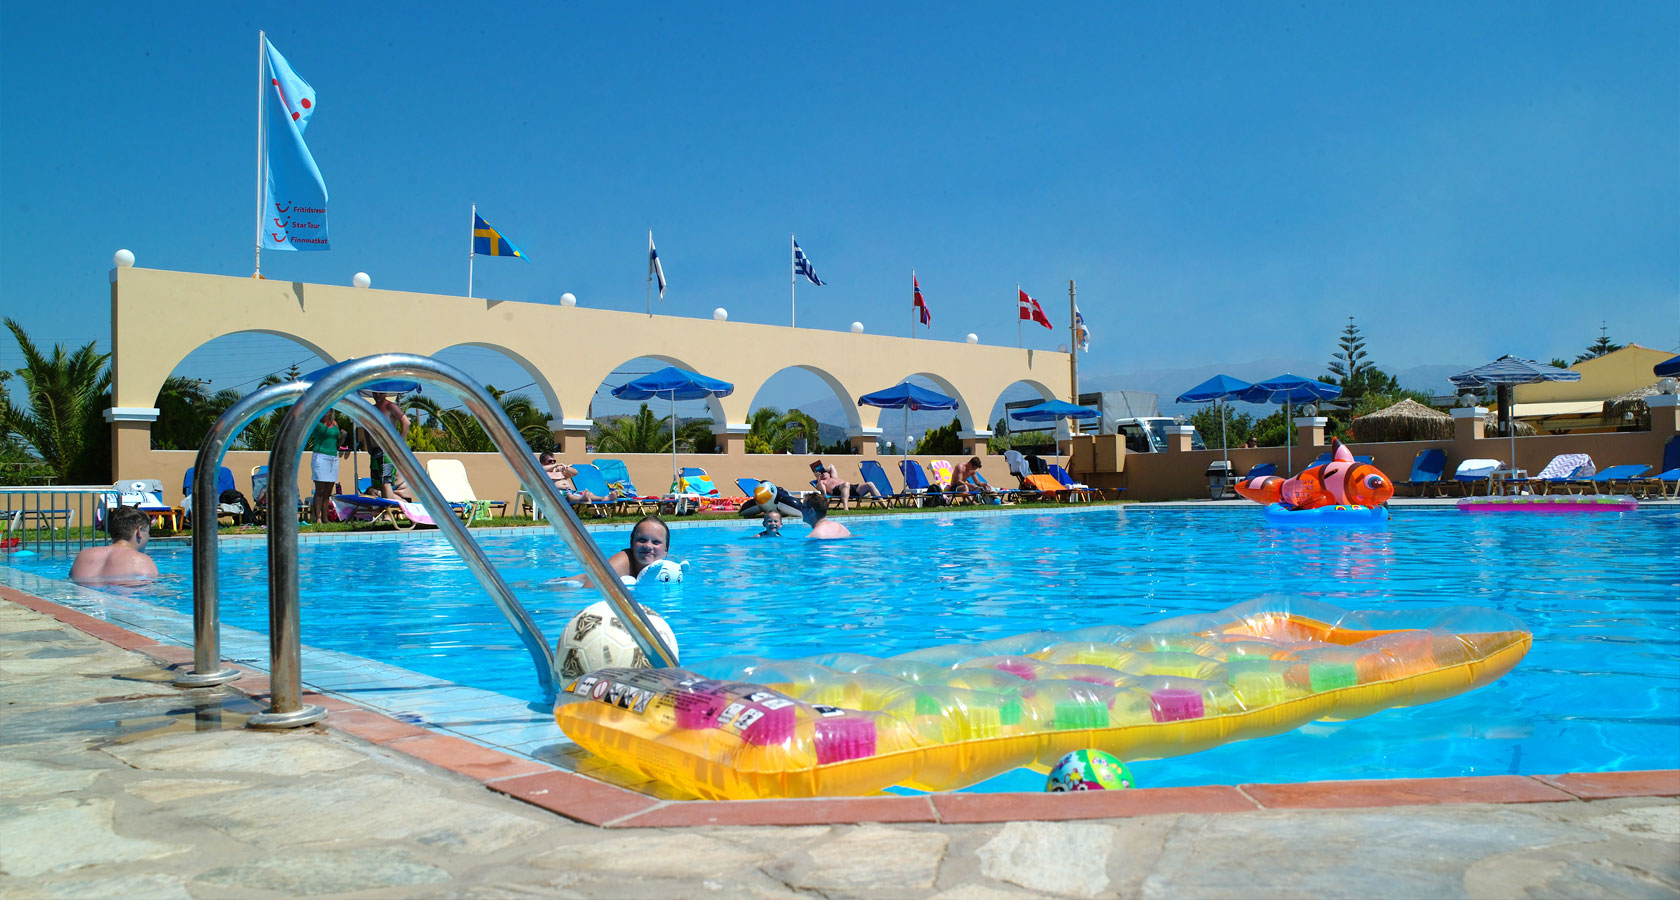 cretasun-slide-pool